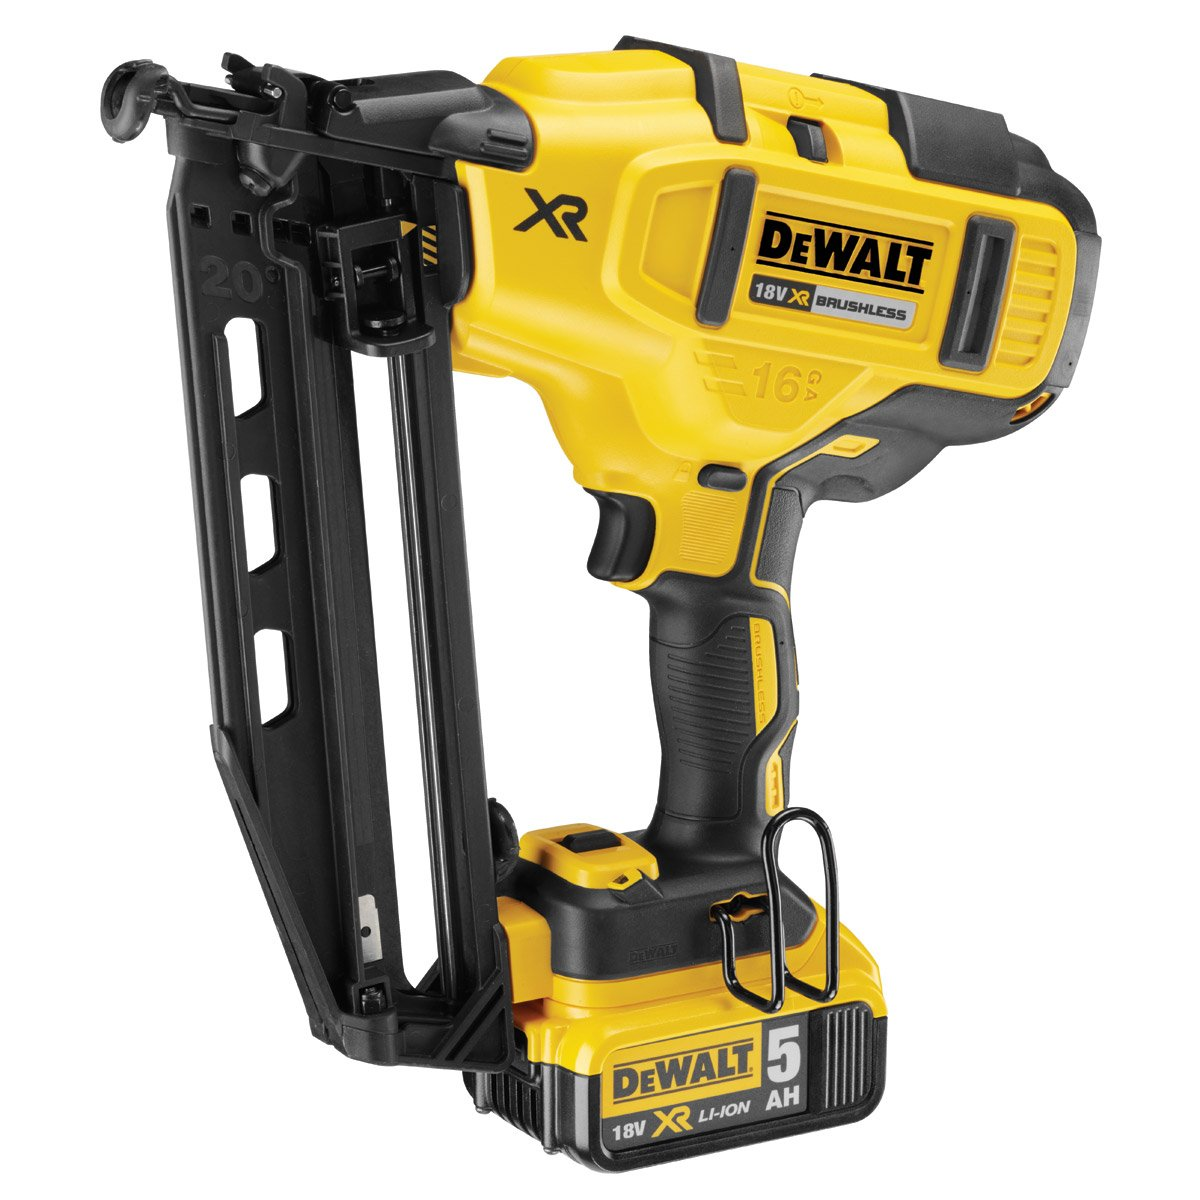 Dewalt dcn660p2-gb 18 V XR schnurlose Li-Ion Brushless: Amazon.de ...